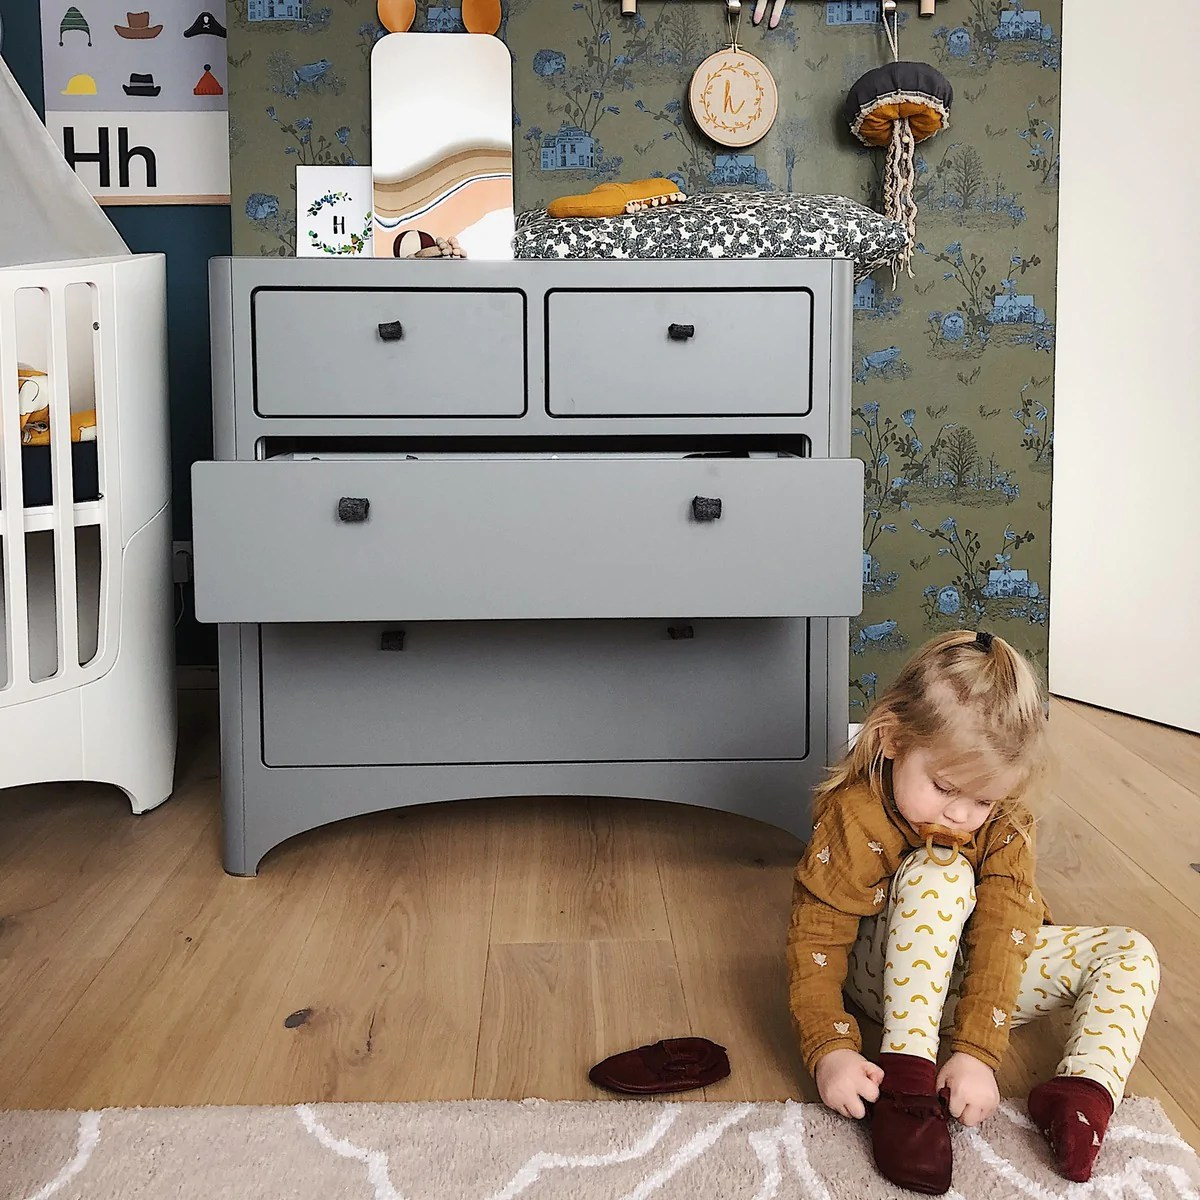 Kinderkommode Kommode Sideboard Kinderzimmer Holz Lavie Mobel Baby